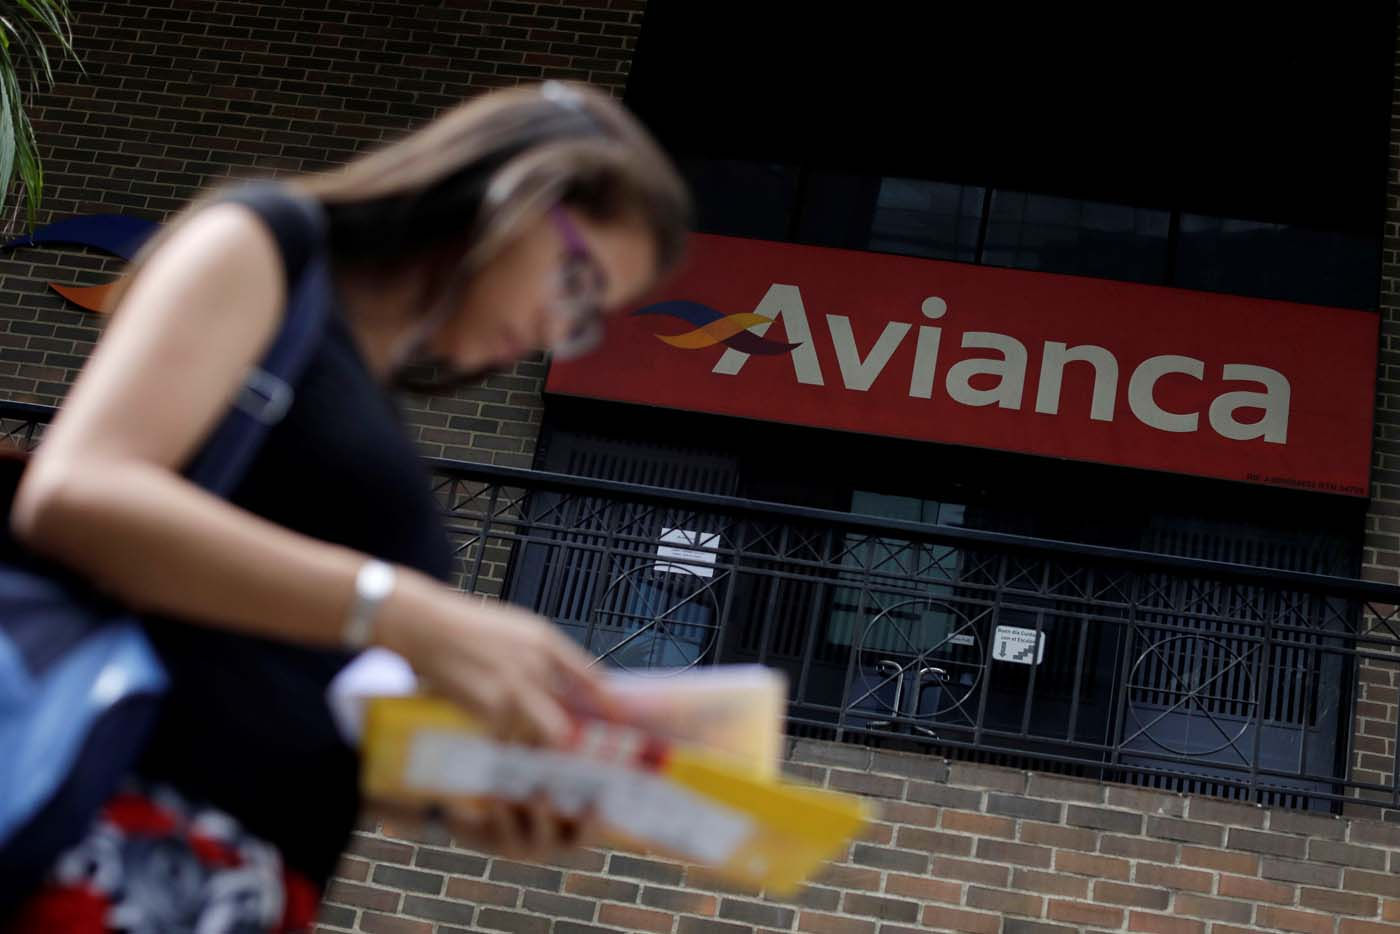 An office of Avianca airlines is seen in Caracas, Venezuela July 27, 2017. REUTERS/Ueslei Marcelino